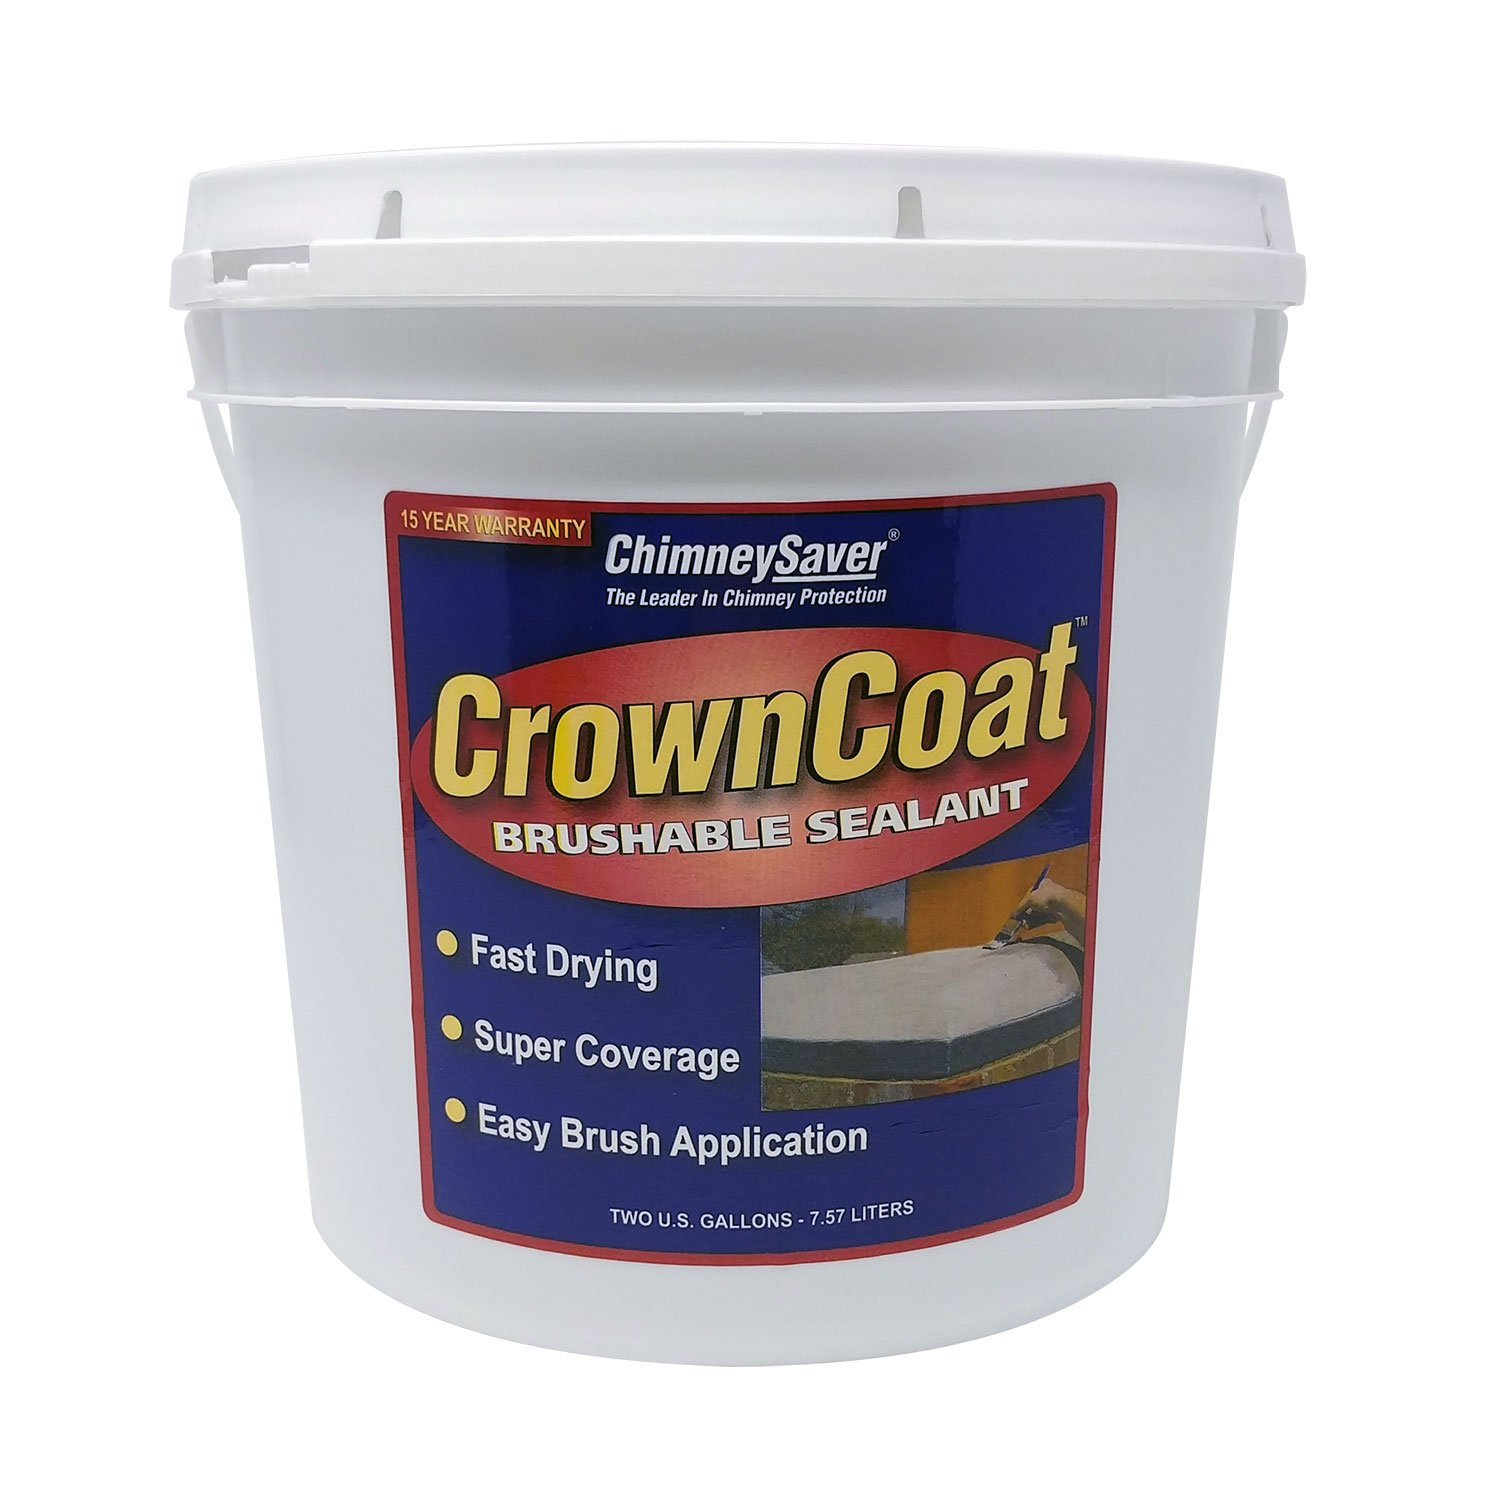 crowncoat brushable sealant standard color 2 gallons coat